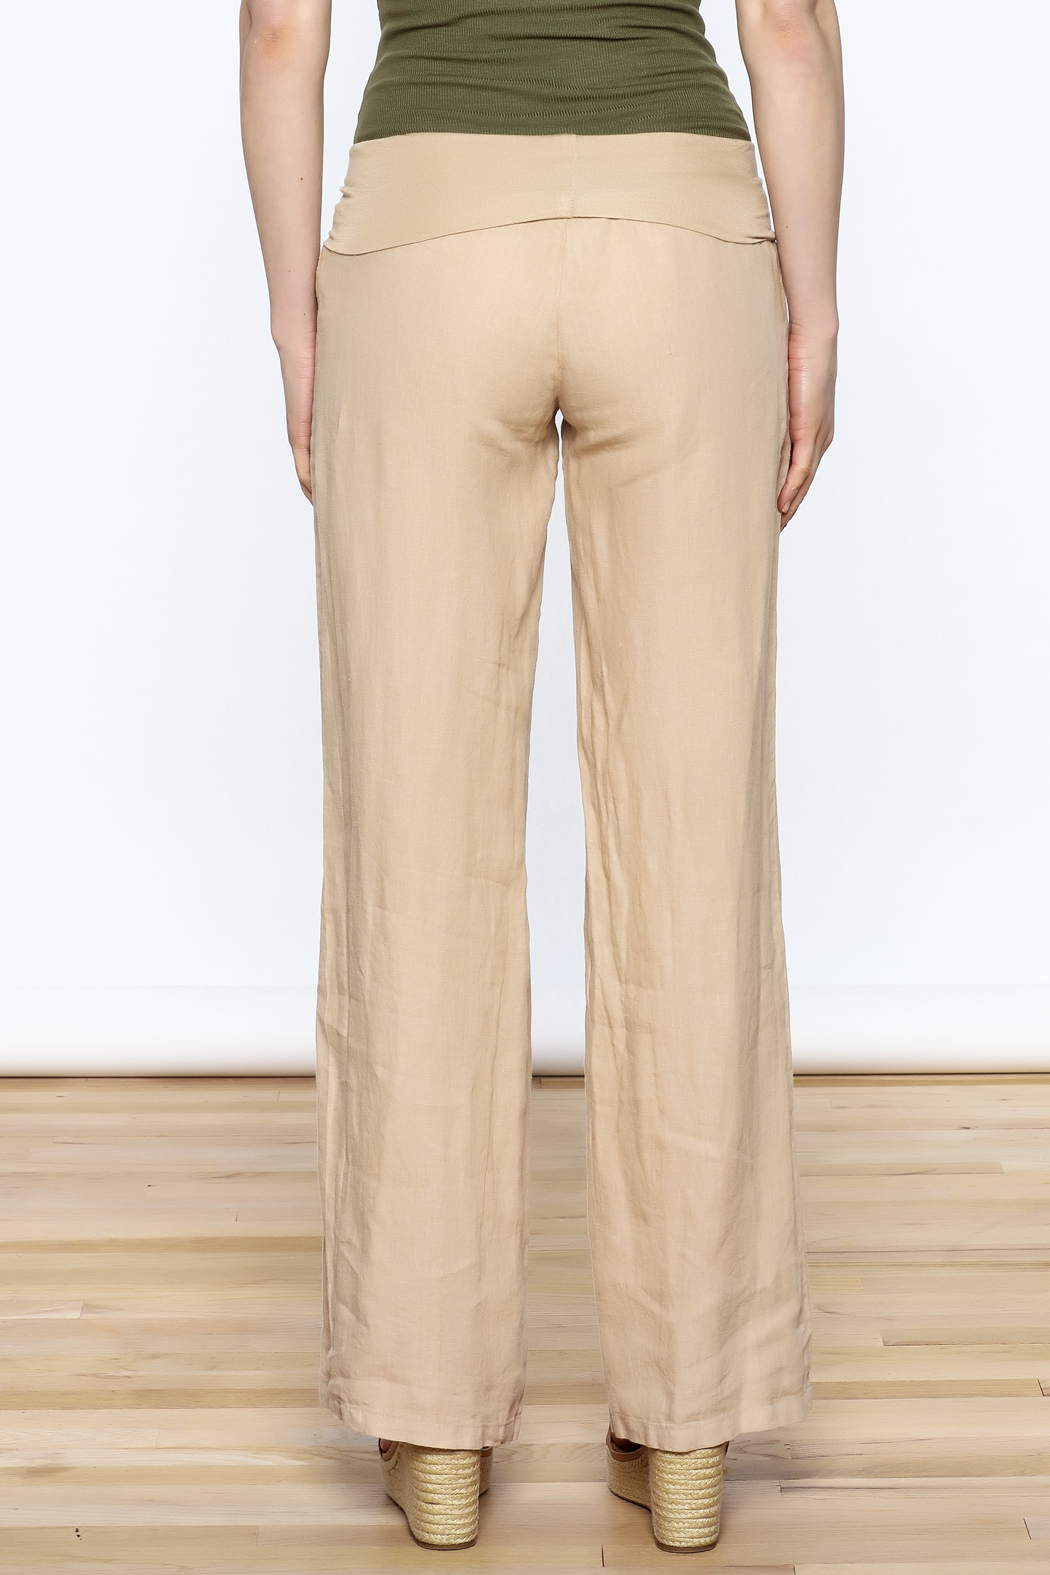 Karlie All Linen Pants - Back Cropped Image